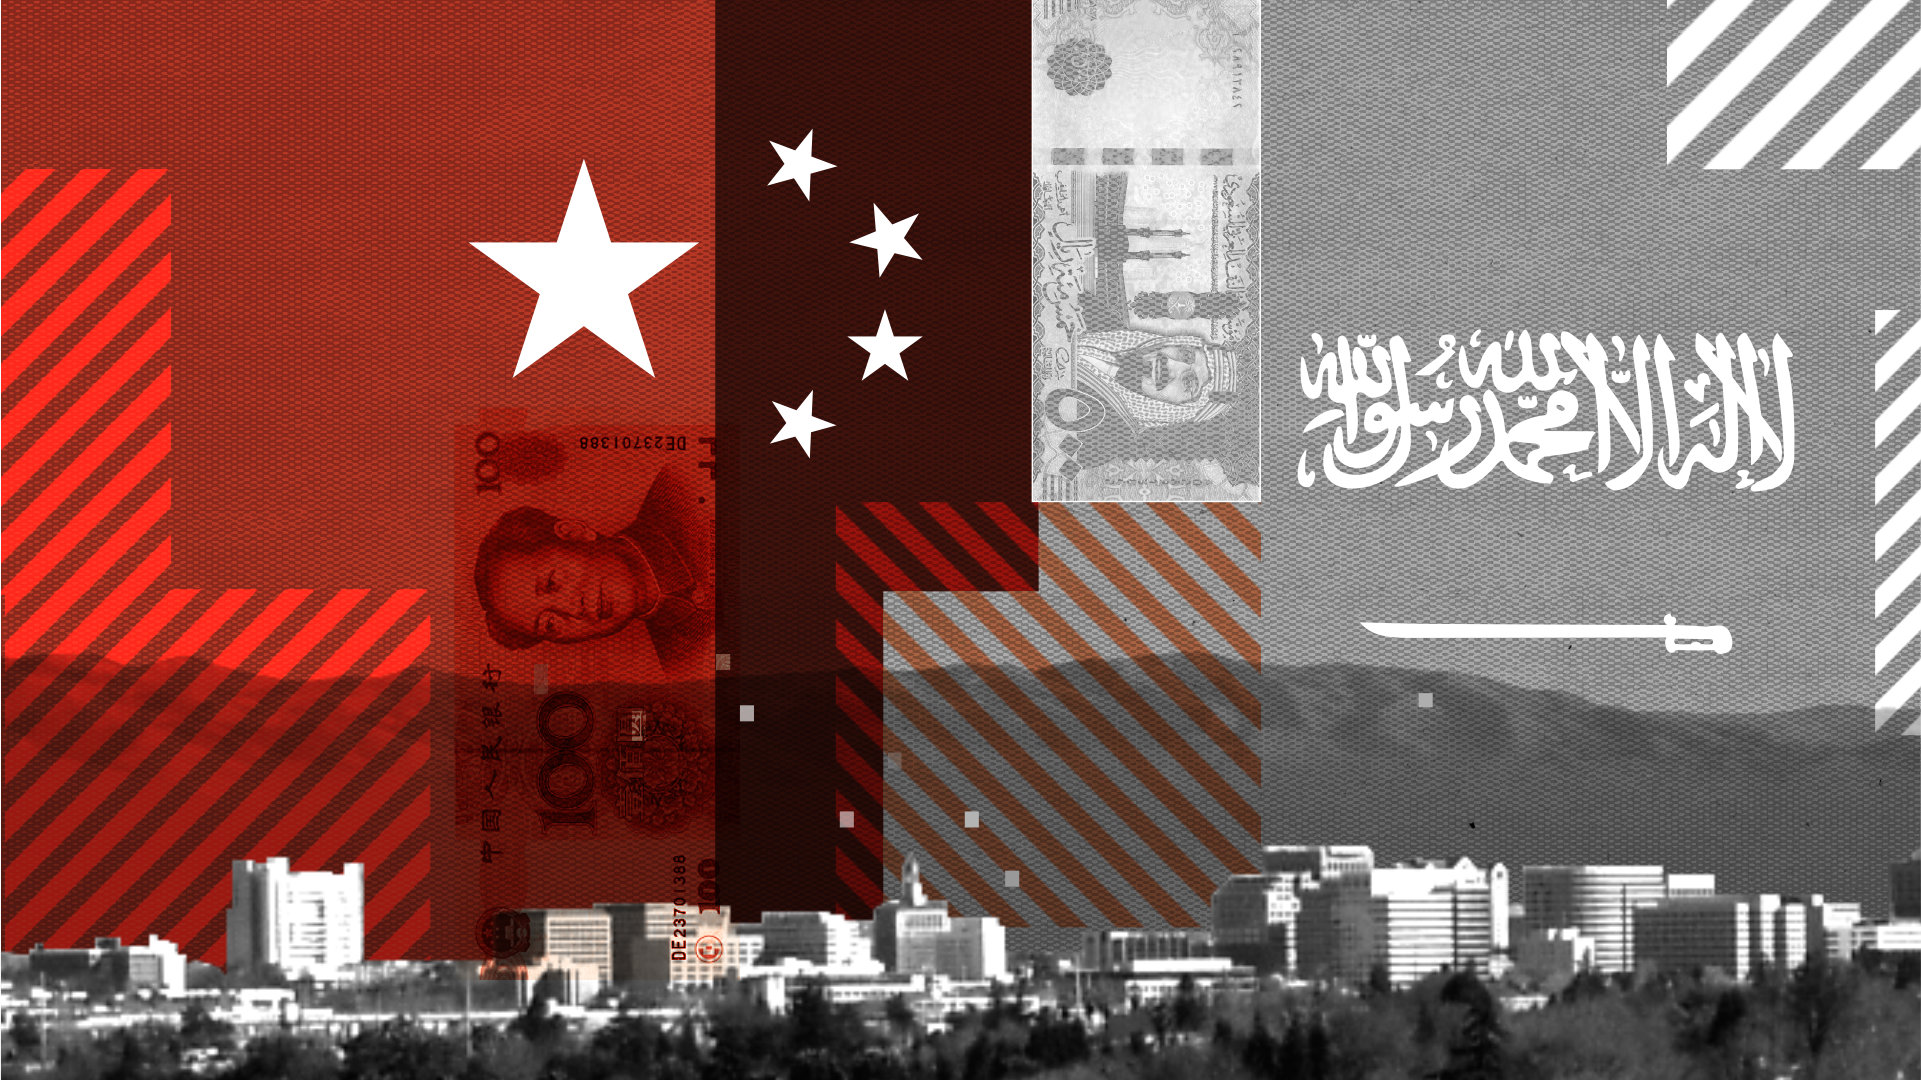 A photo illustration of a Chinese flag superimposed on an urban skyline.